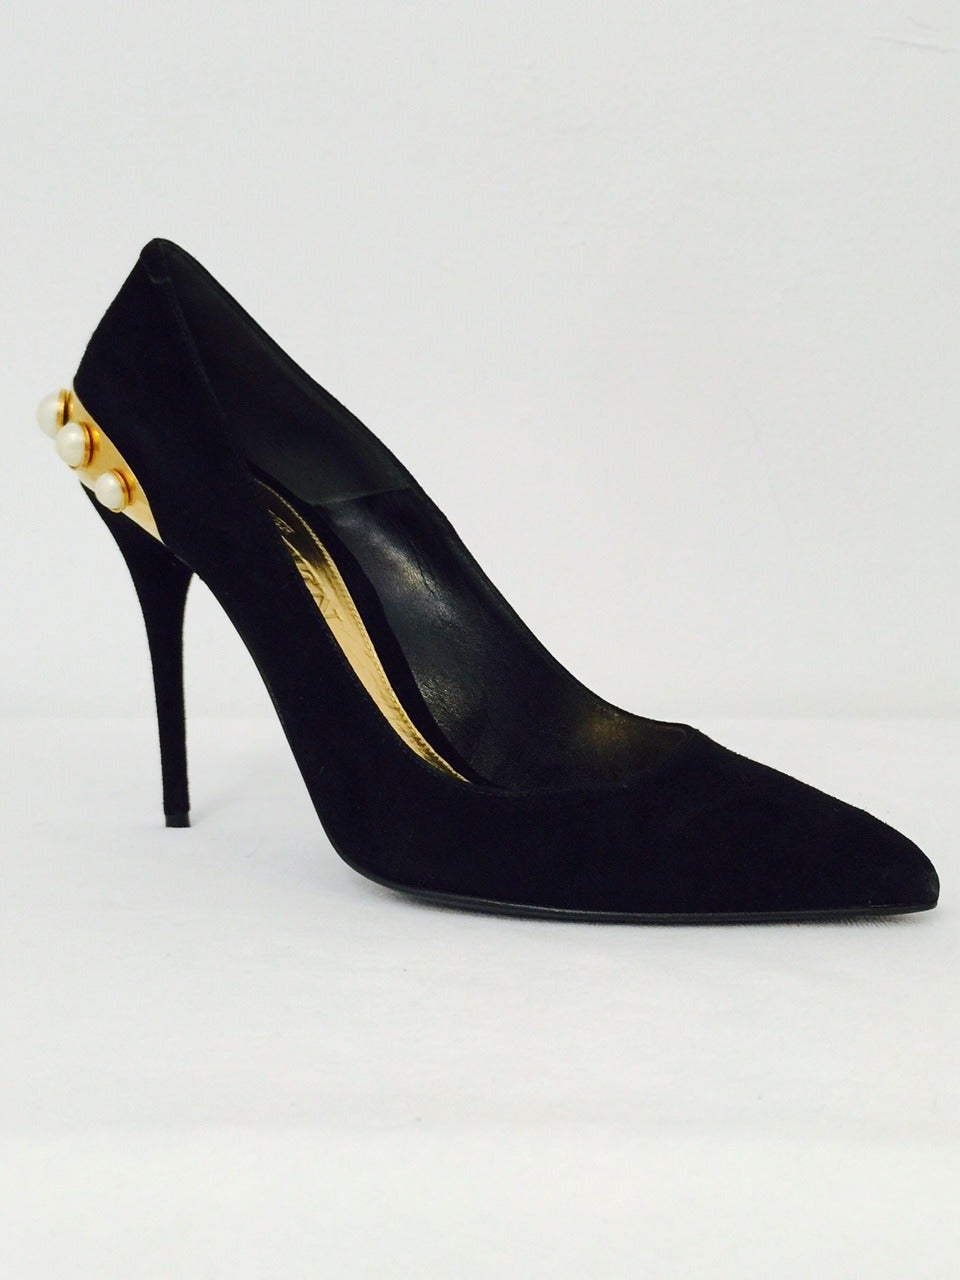 Women's Awe-Inspiring Alexander McQueen Black Suede Evening Pumps with Pearls For Sale